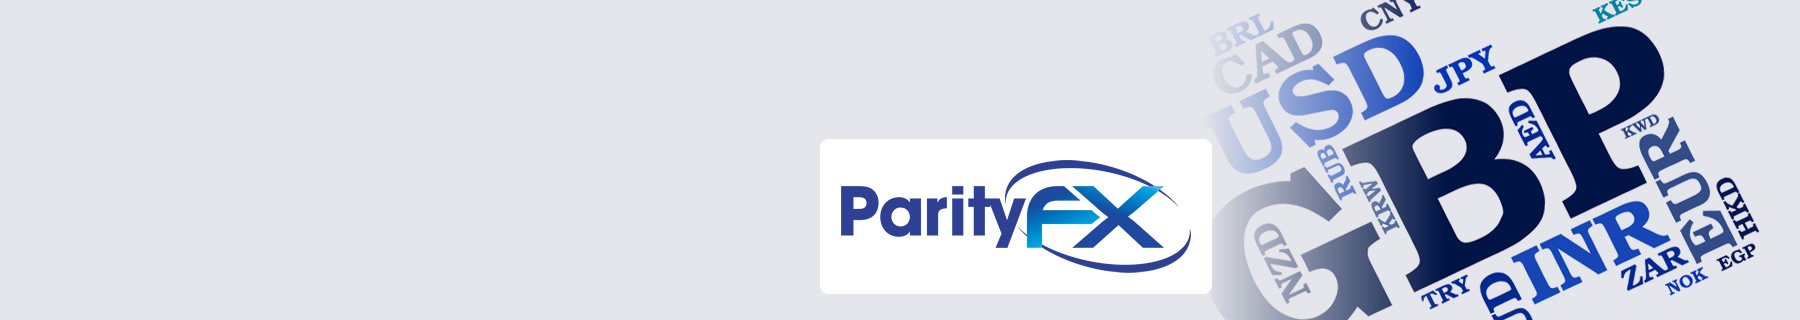 ParityFX call many foreign countries and have the calls included in monthly call bundles